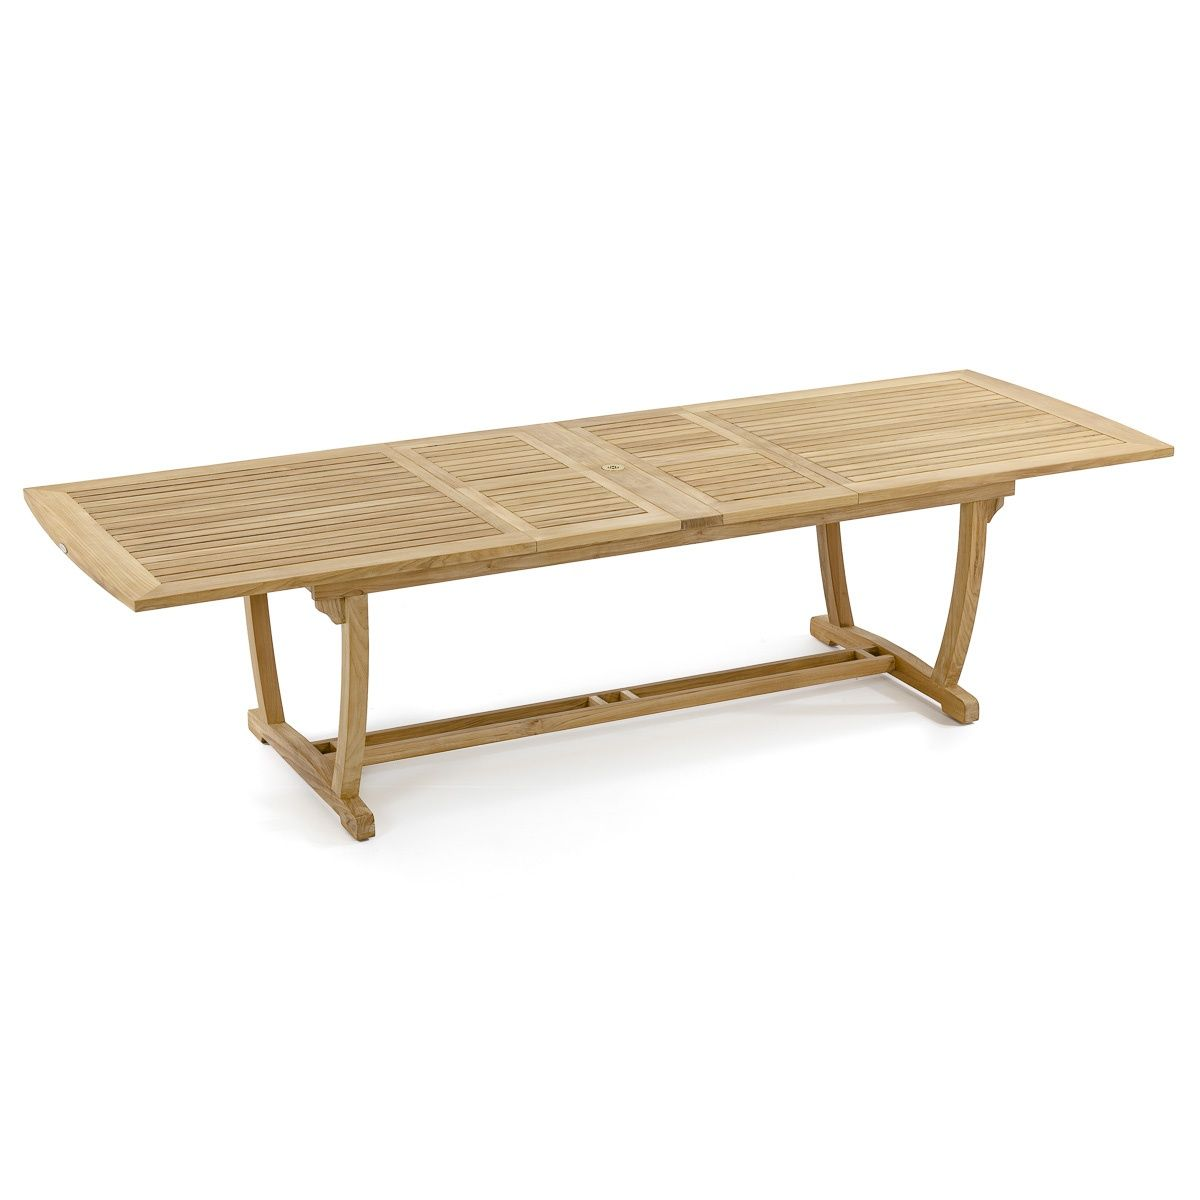 Veranda Rectangular Teak Extension Dining Table Westminster Teak